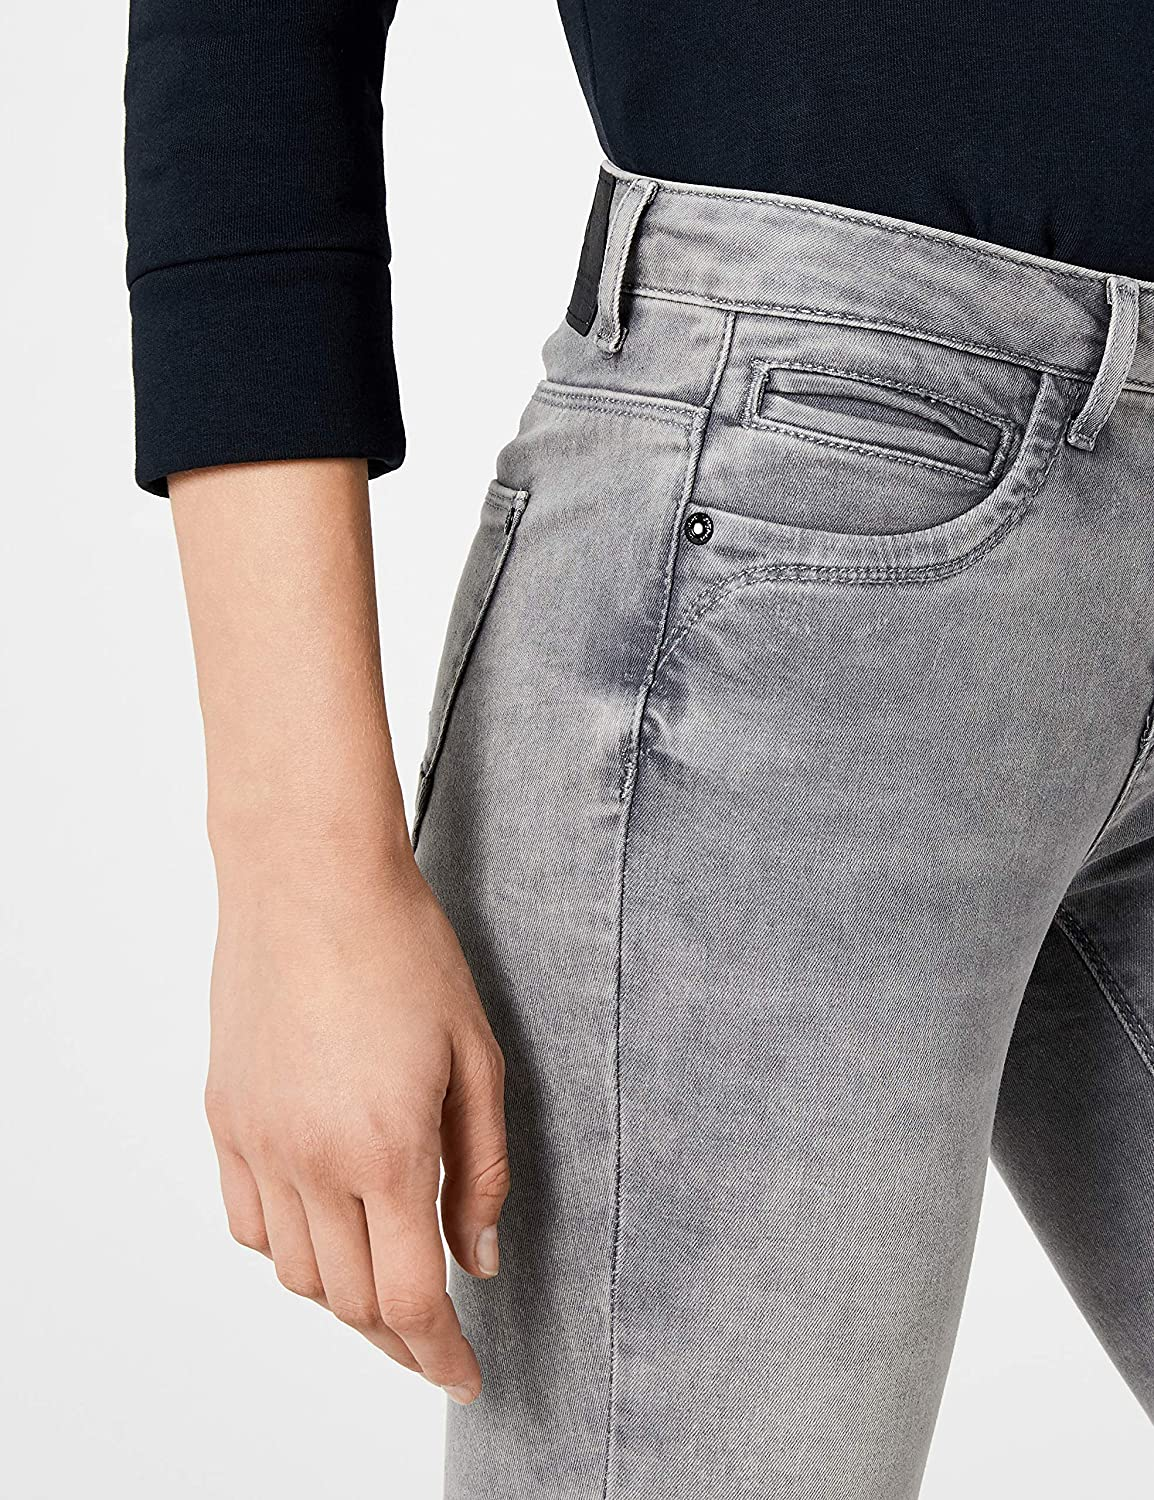 Jeans Mujer ONLY Onlkendell Reg Sk Ank Jea Cre-white Noos